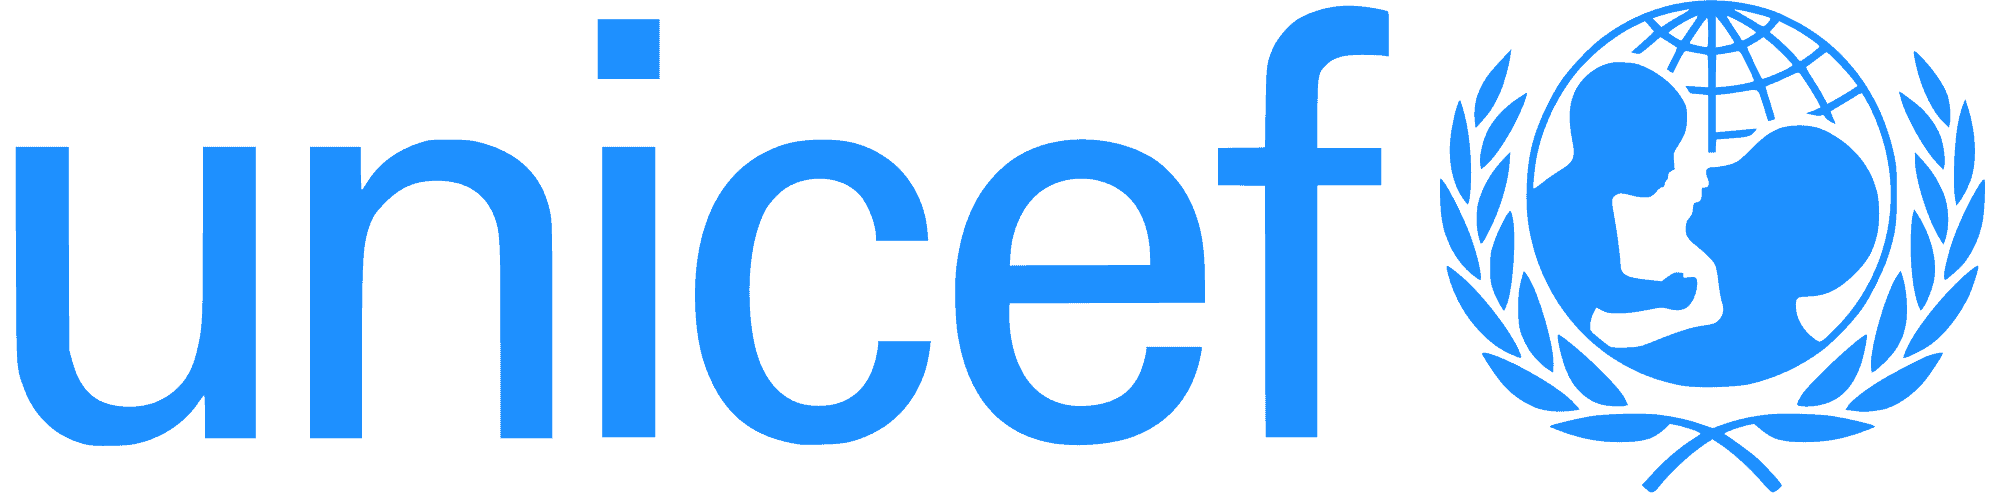 unicef logo transparent